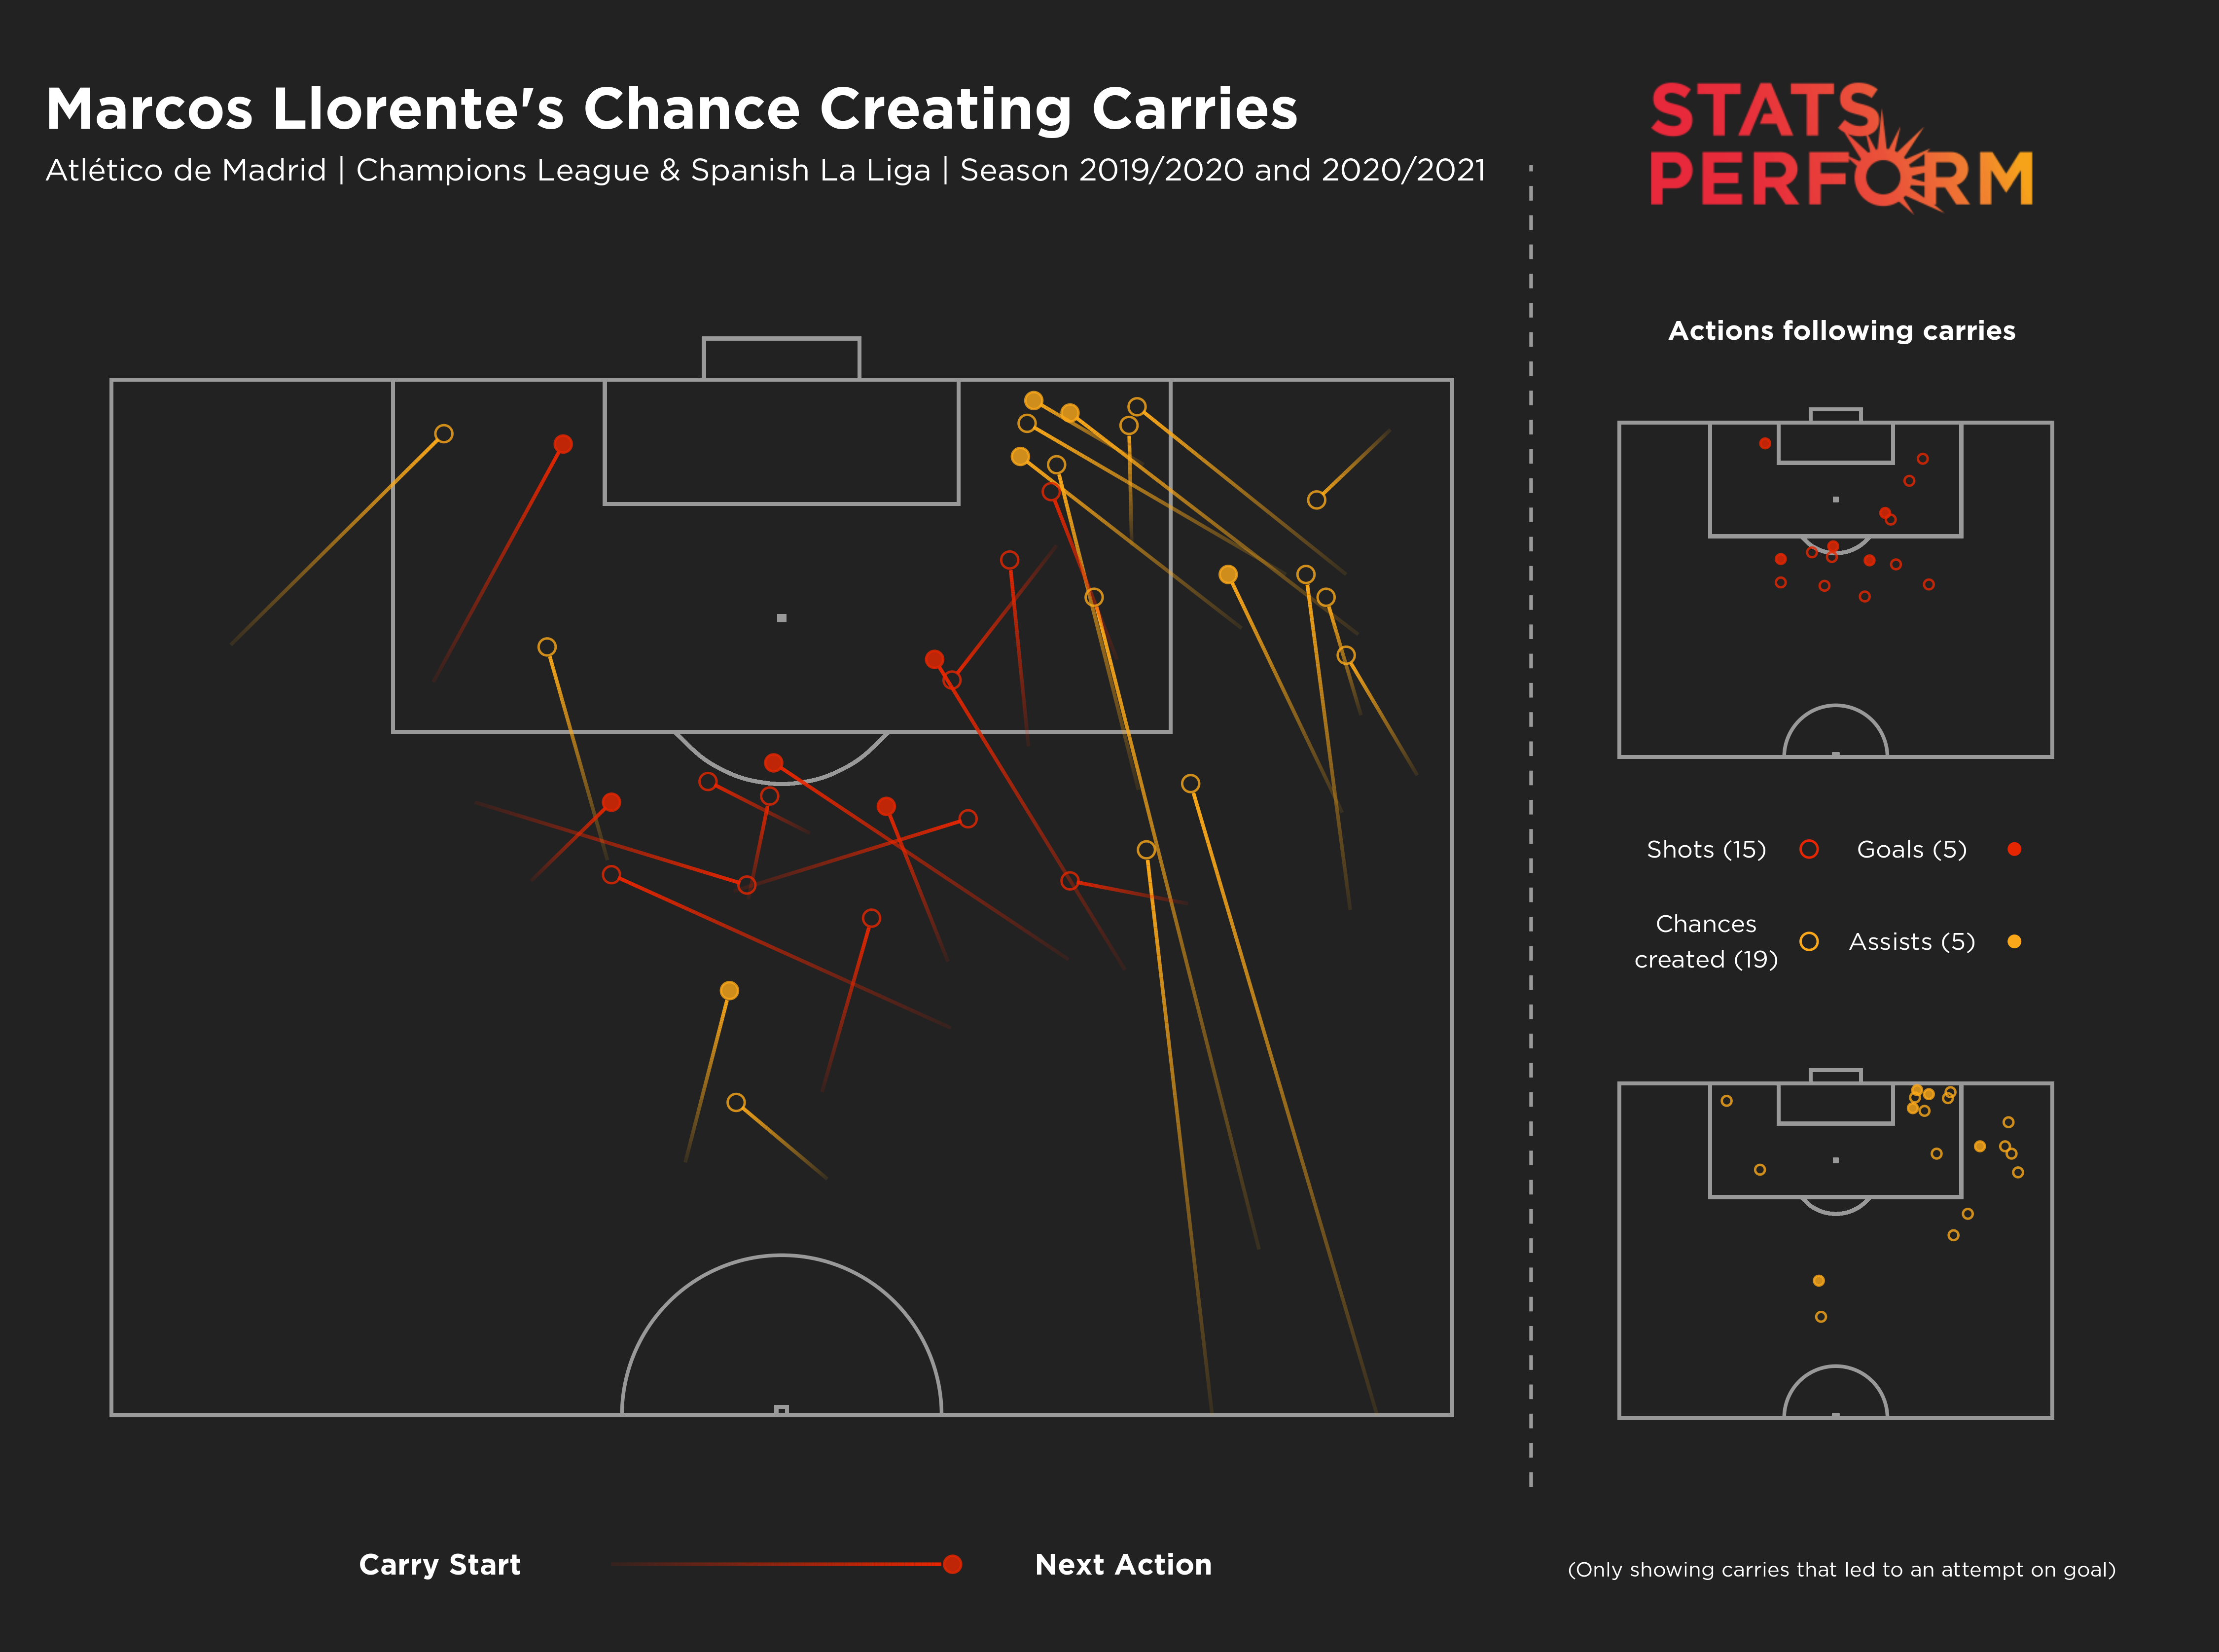 Marcos Llorente chance creating carries